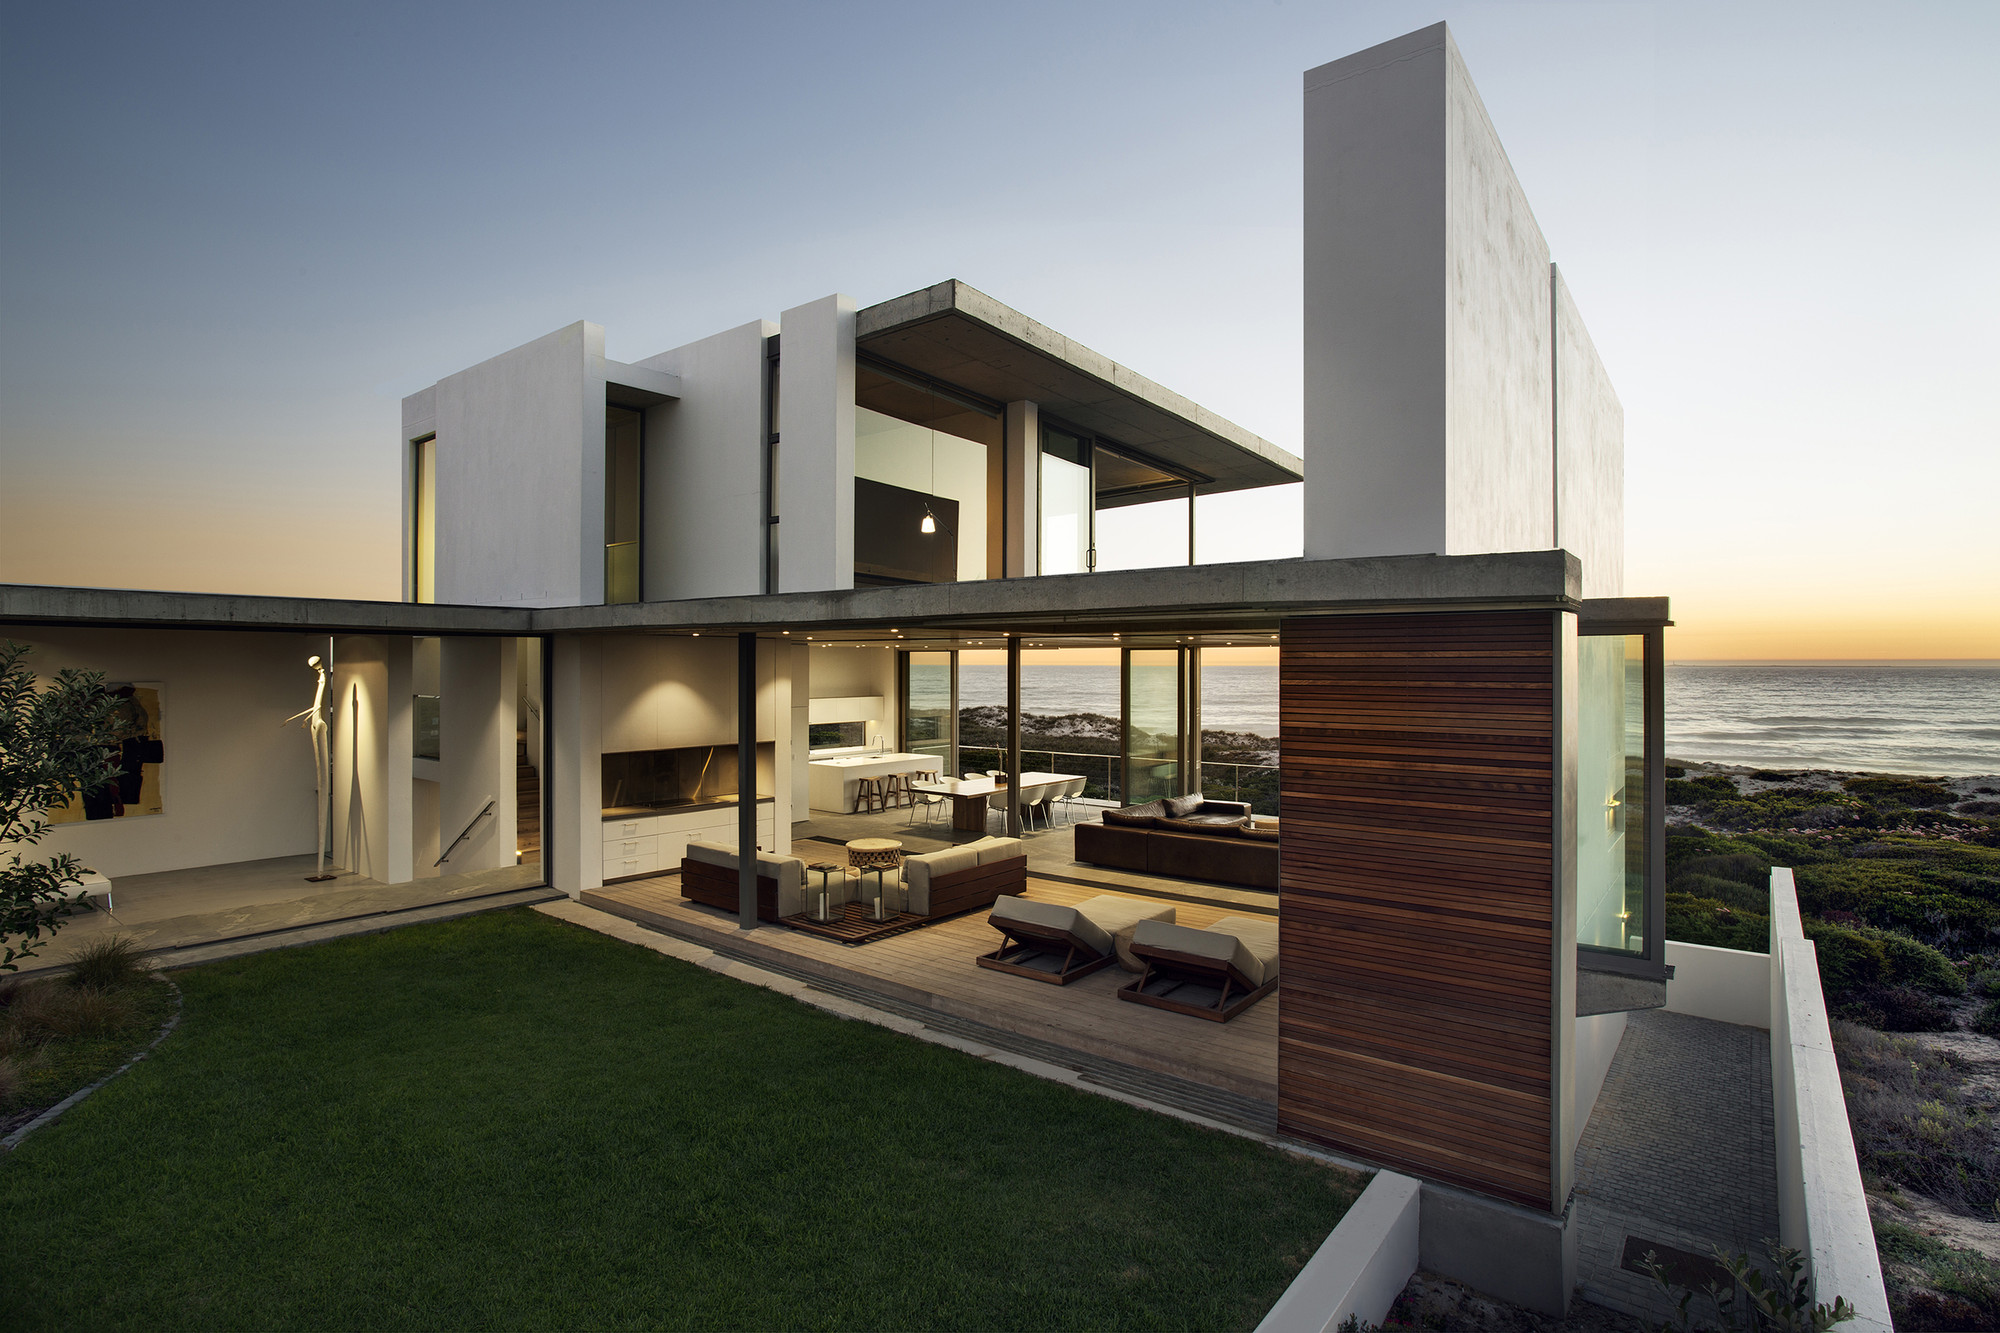 Pearl bay residence gavin maddock design studio archdaily - Residence inversee studios architecture en californie ...